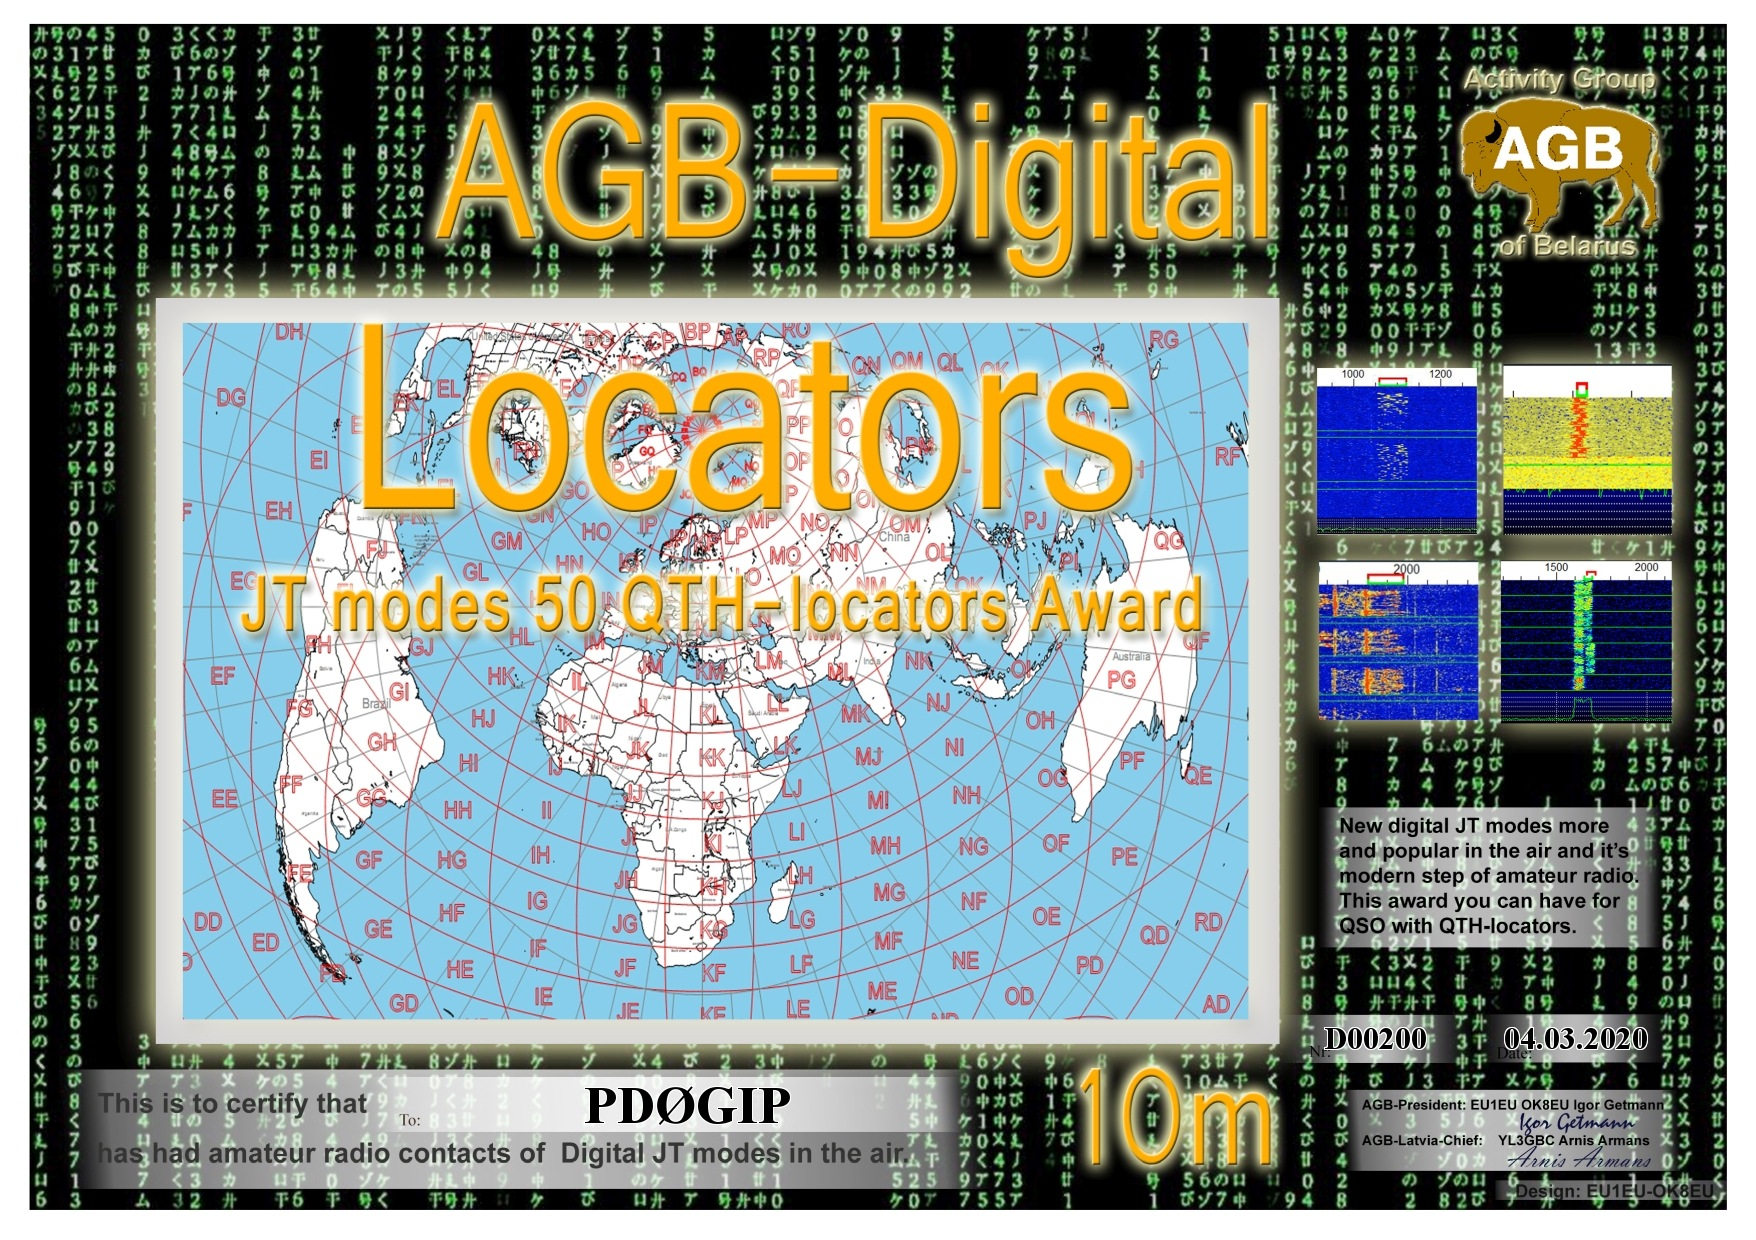 PD0GIP LOCATORS 10M 50 AGB